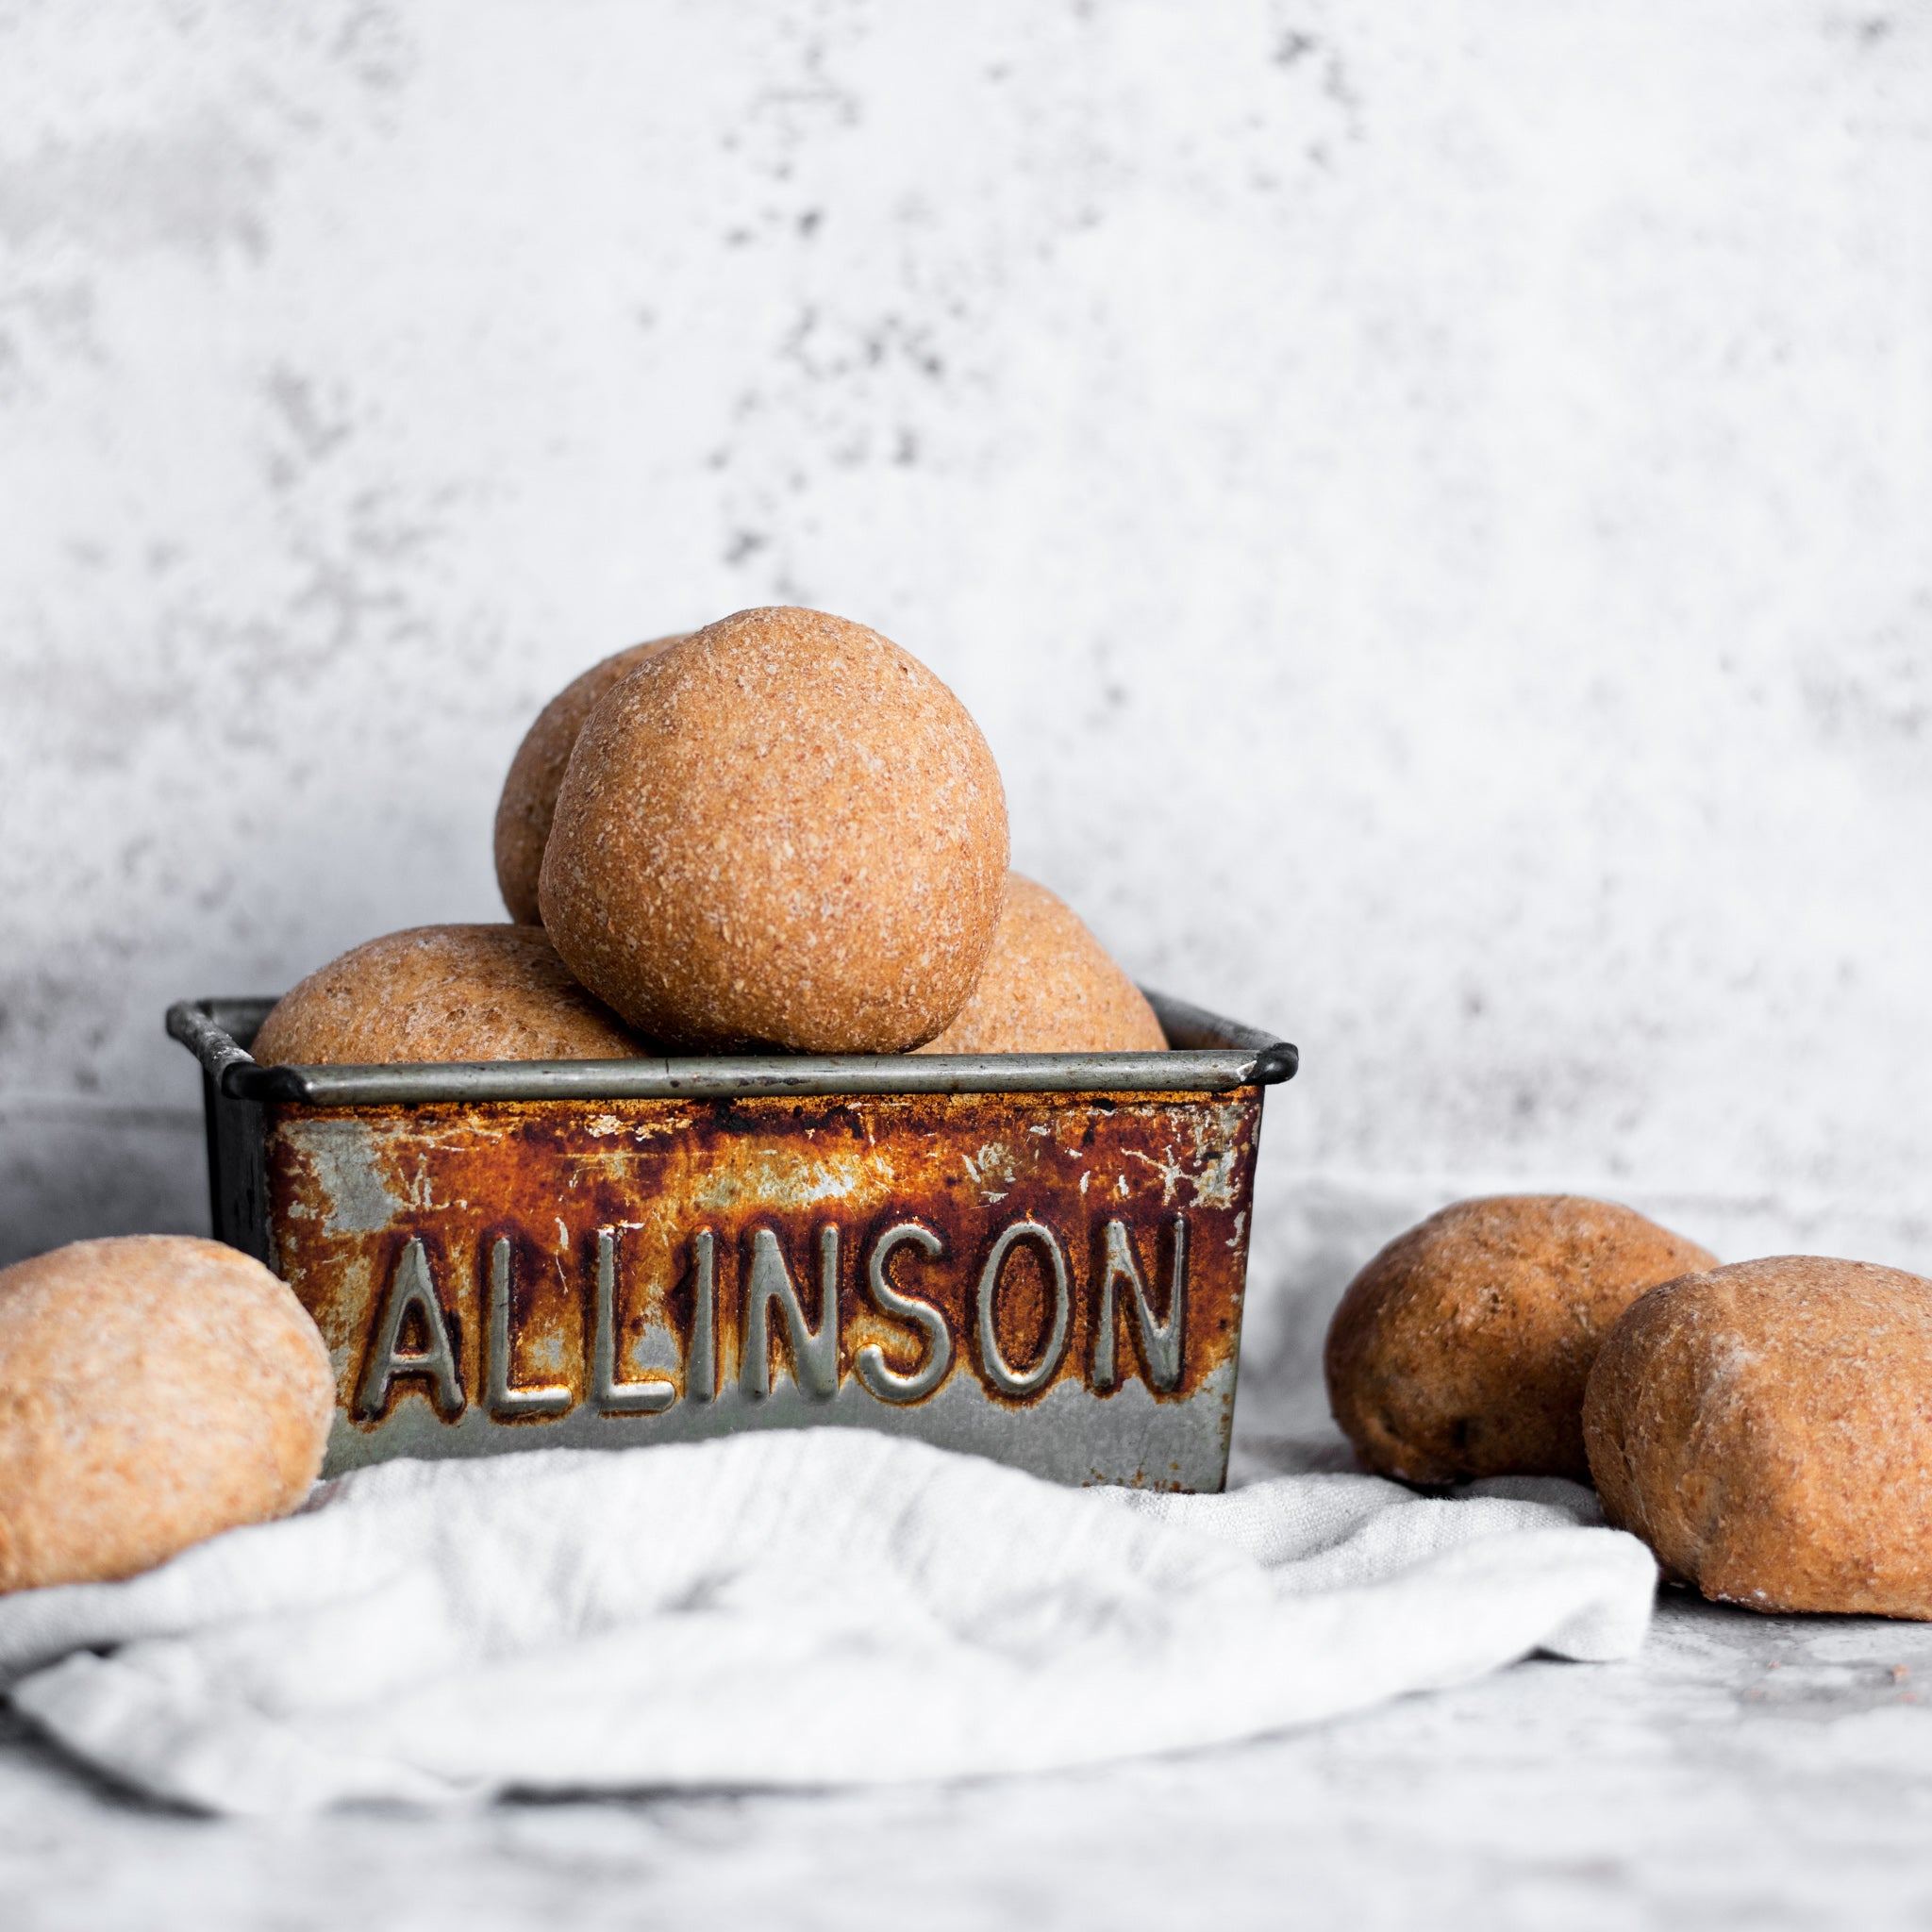 Wholemeal-Bread-Rolls-by-Allinson-s-(7).jpg